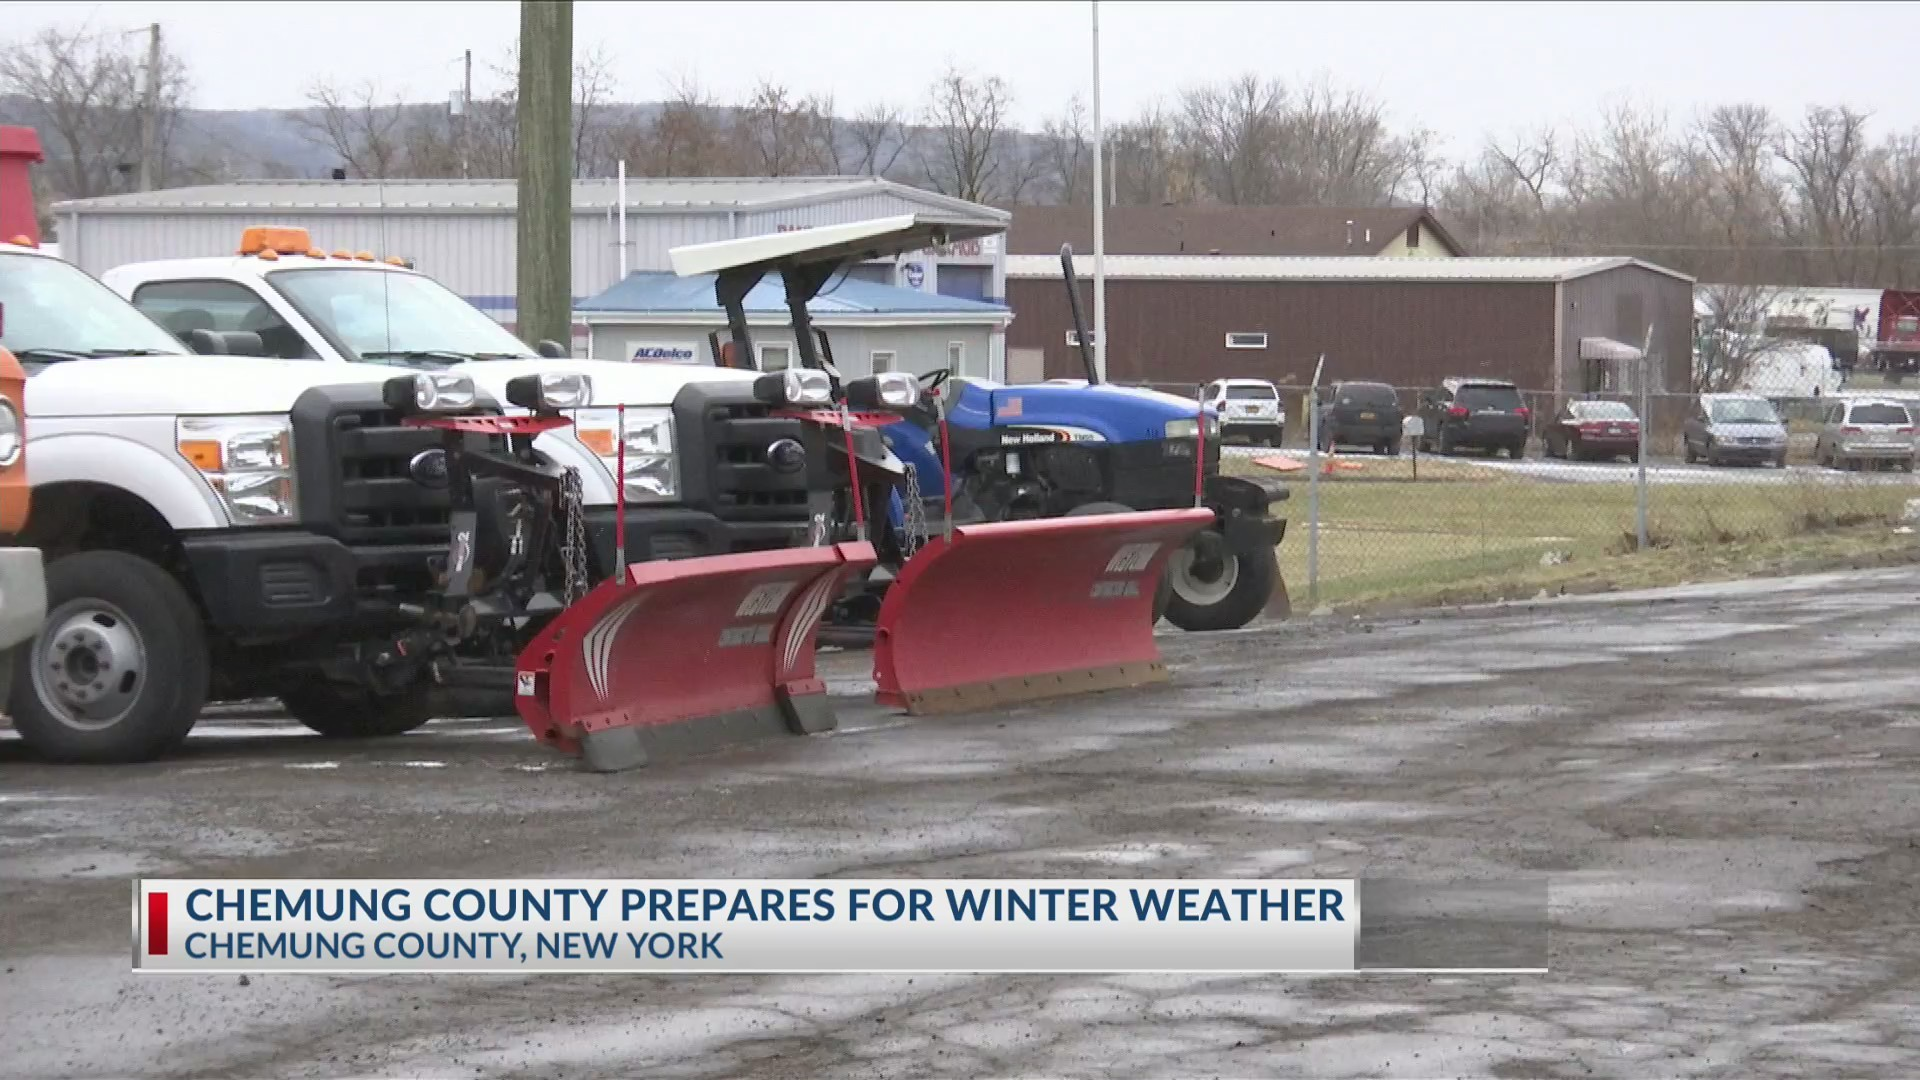 Chemung County Prepares for Storm